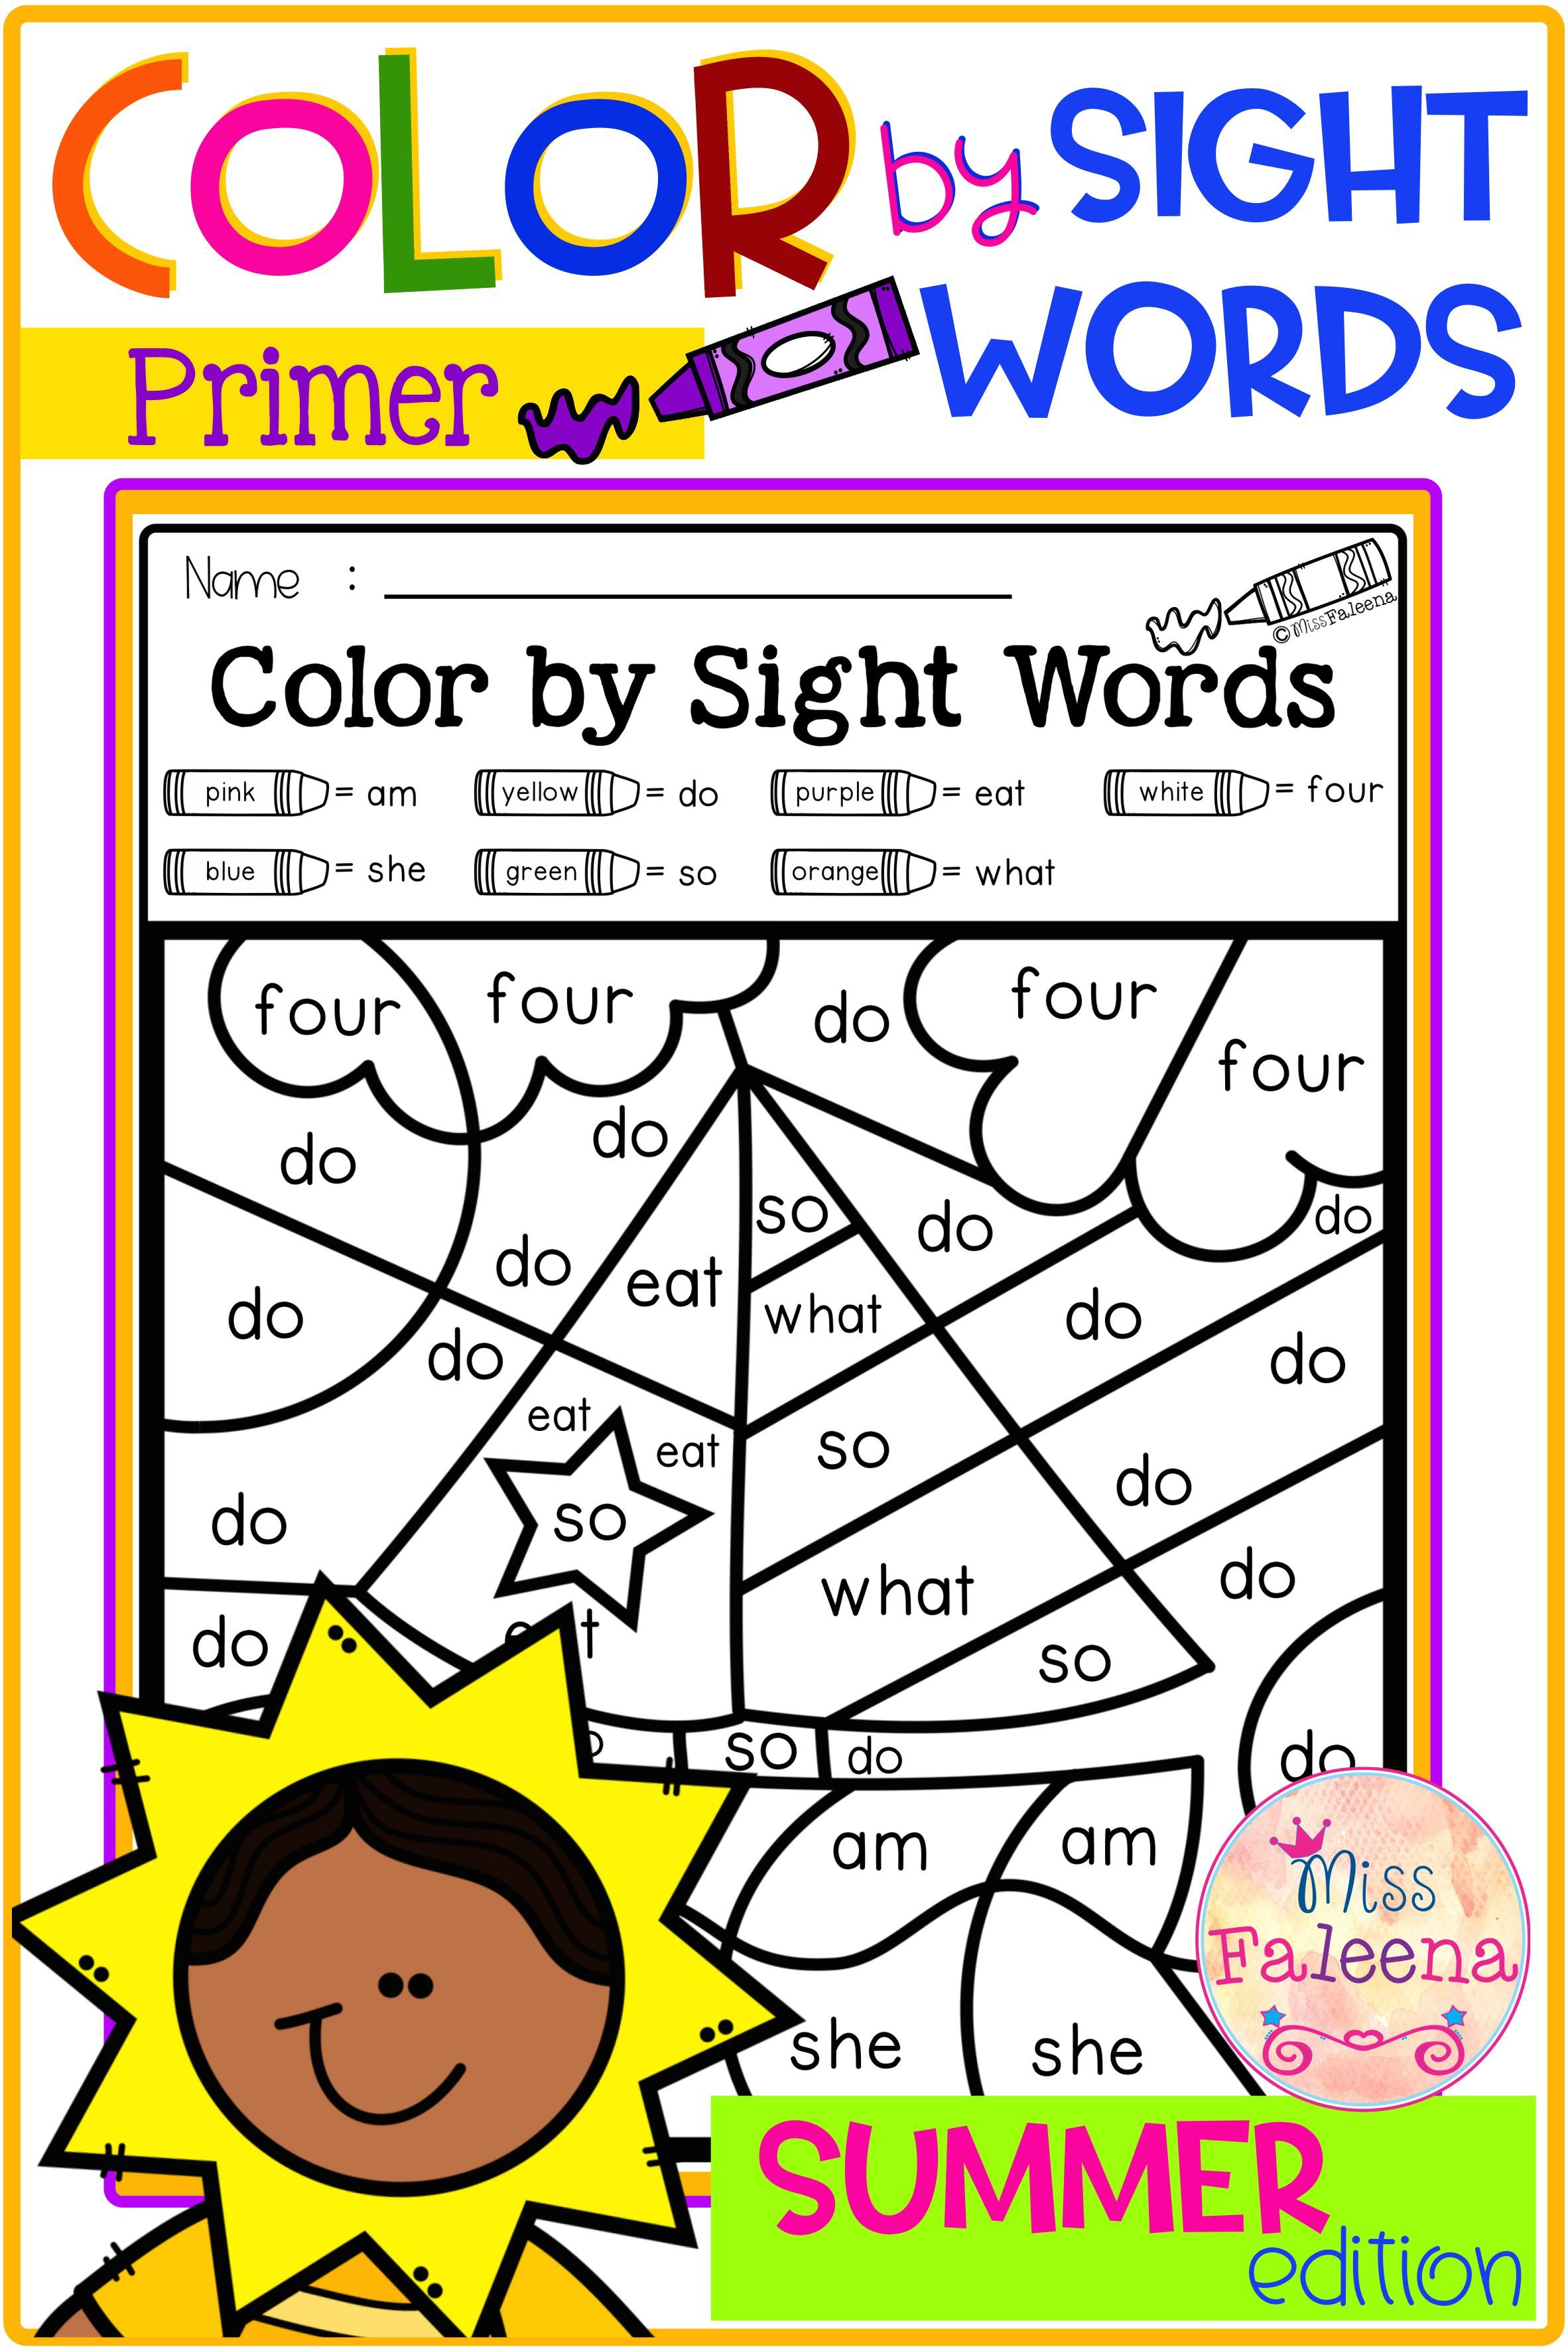 Summer Color by Code Sight Words Primer di 2020